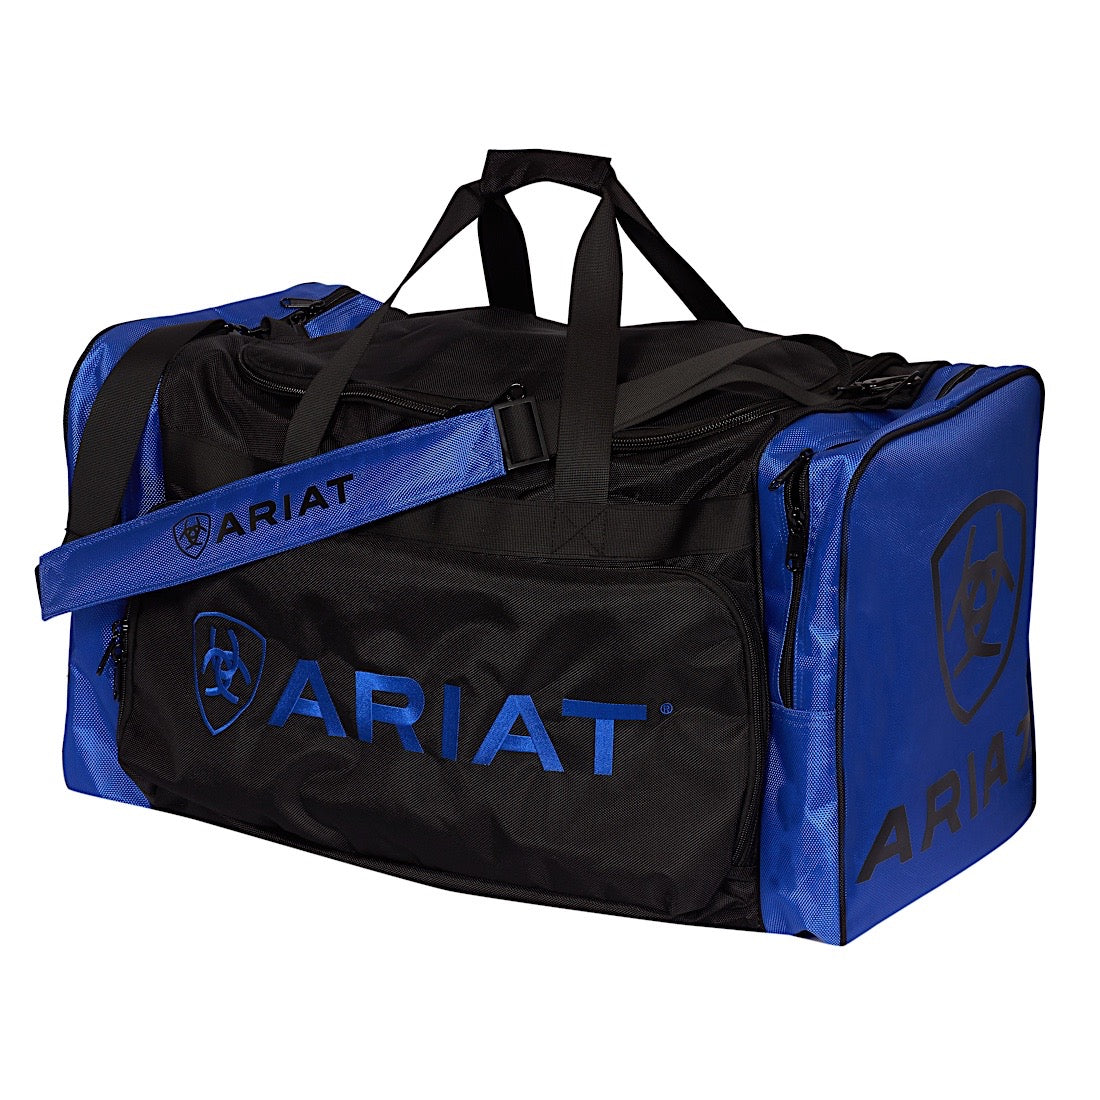 Ariat Junior Gear Bag Cobalt/Black